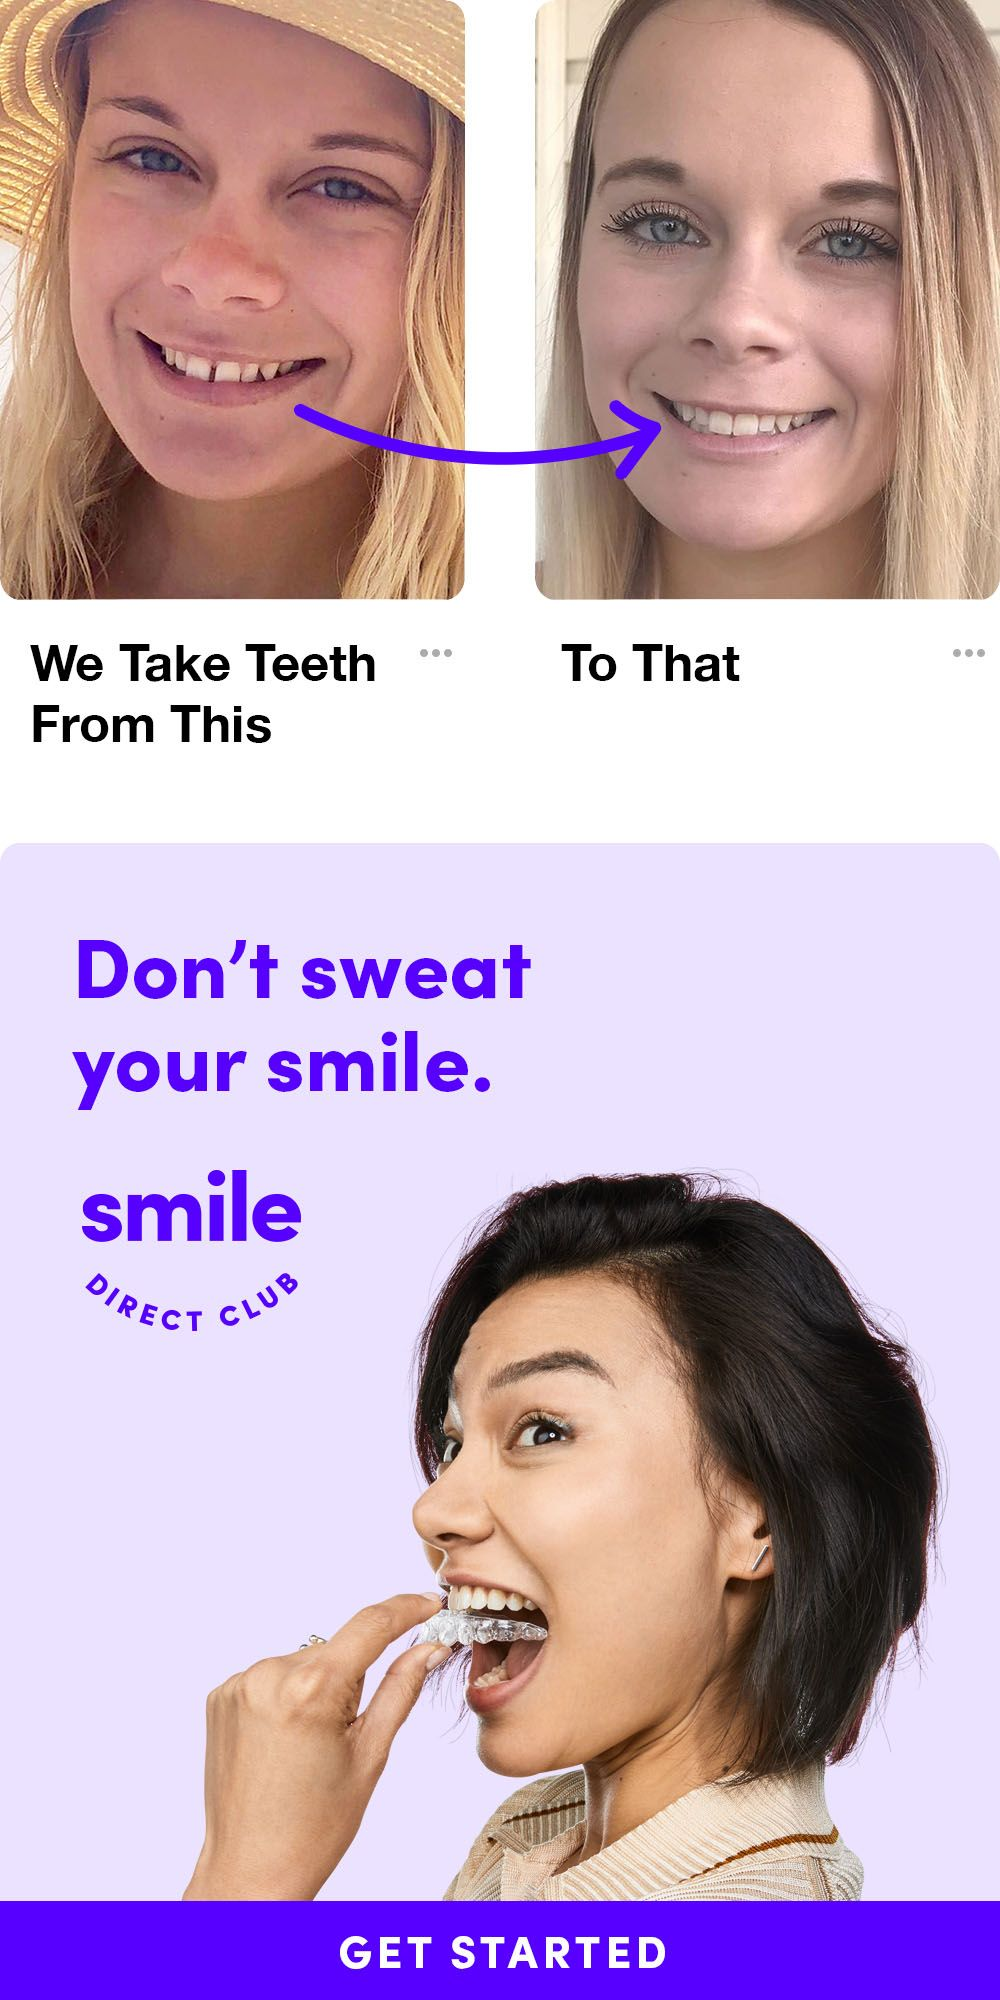 Dont sweat your smile straighten your teeth with